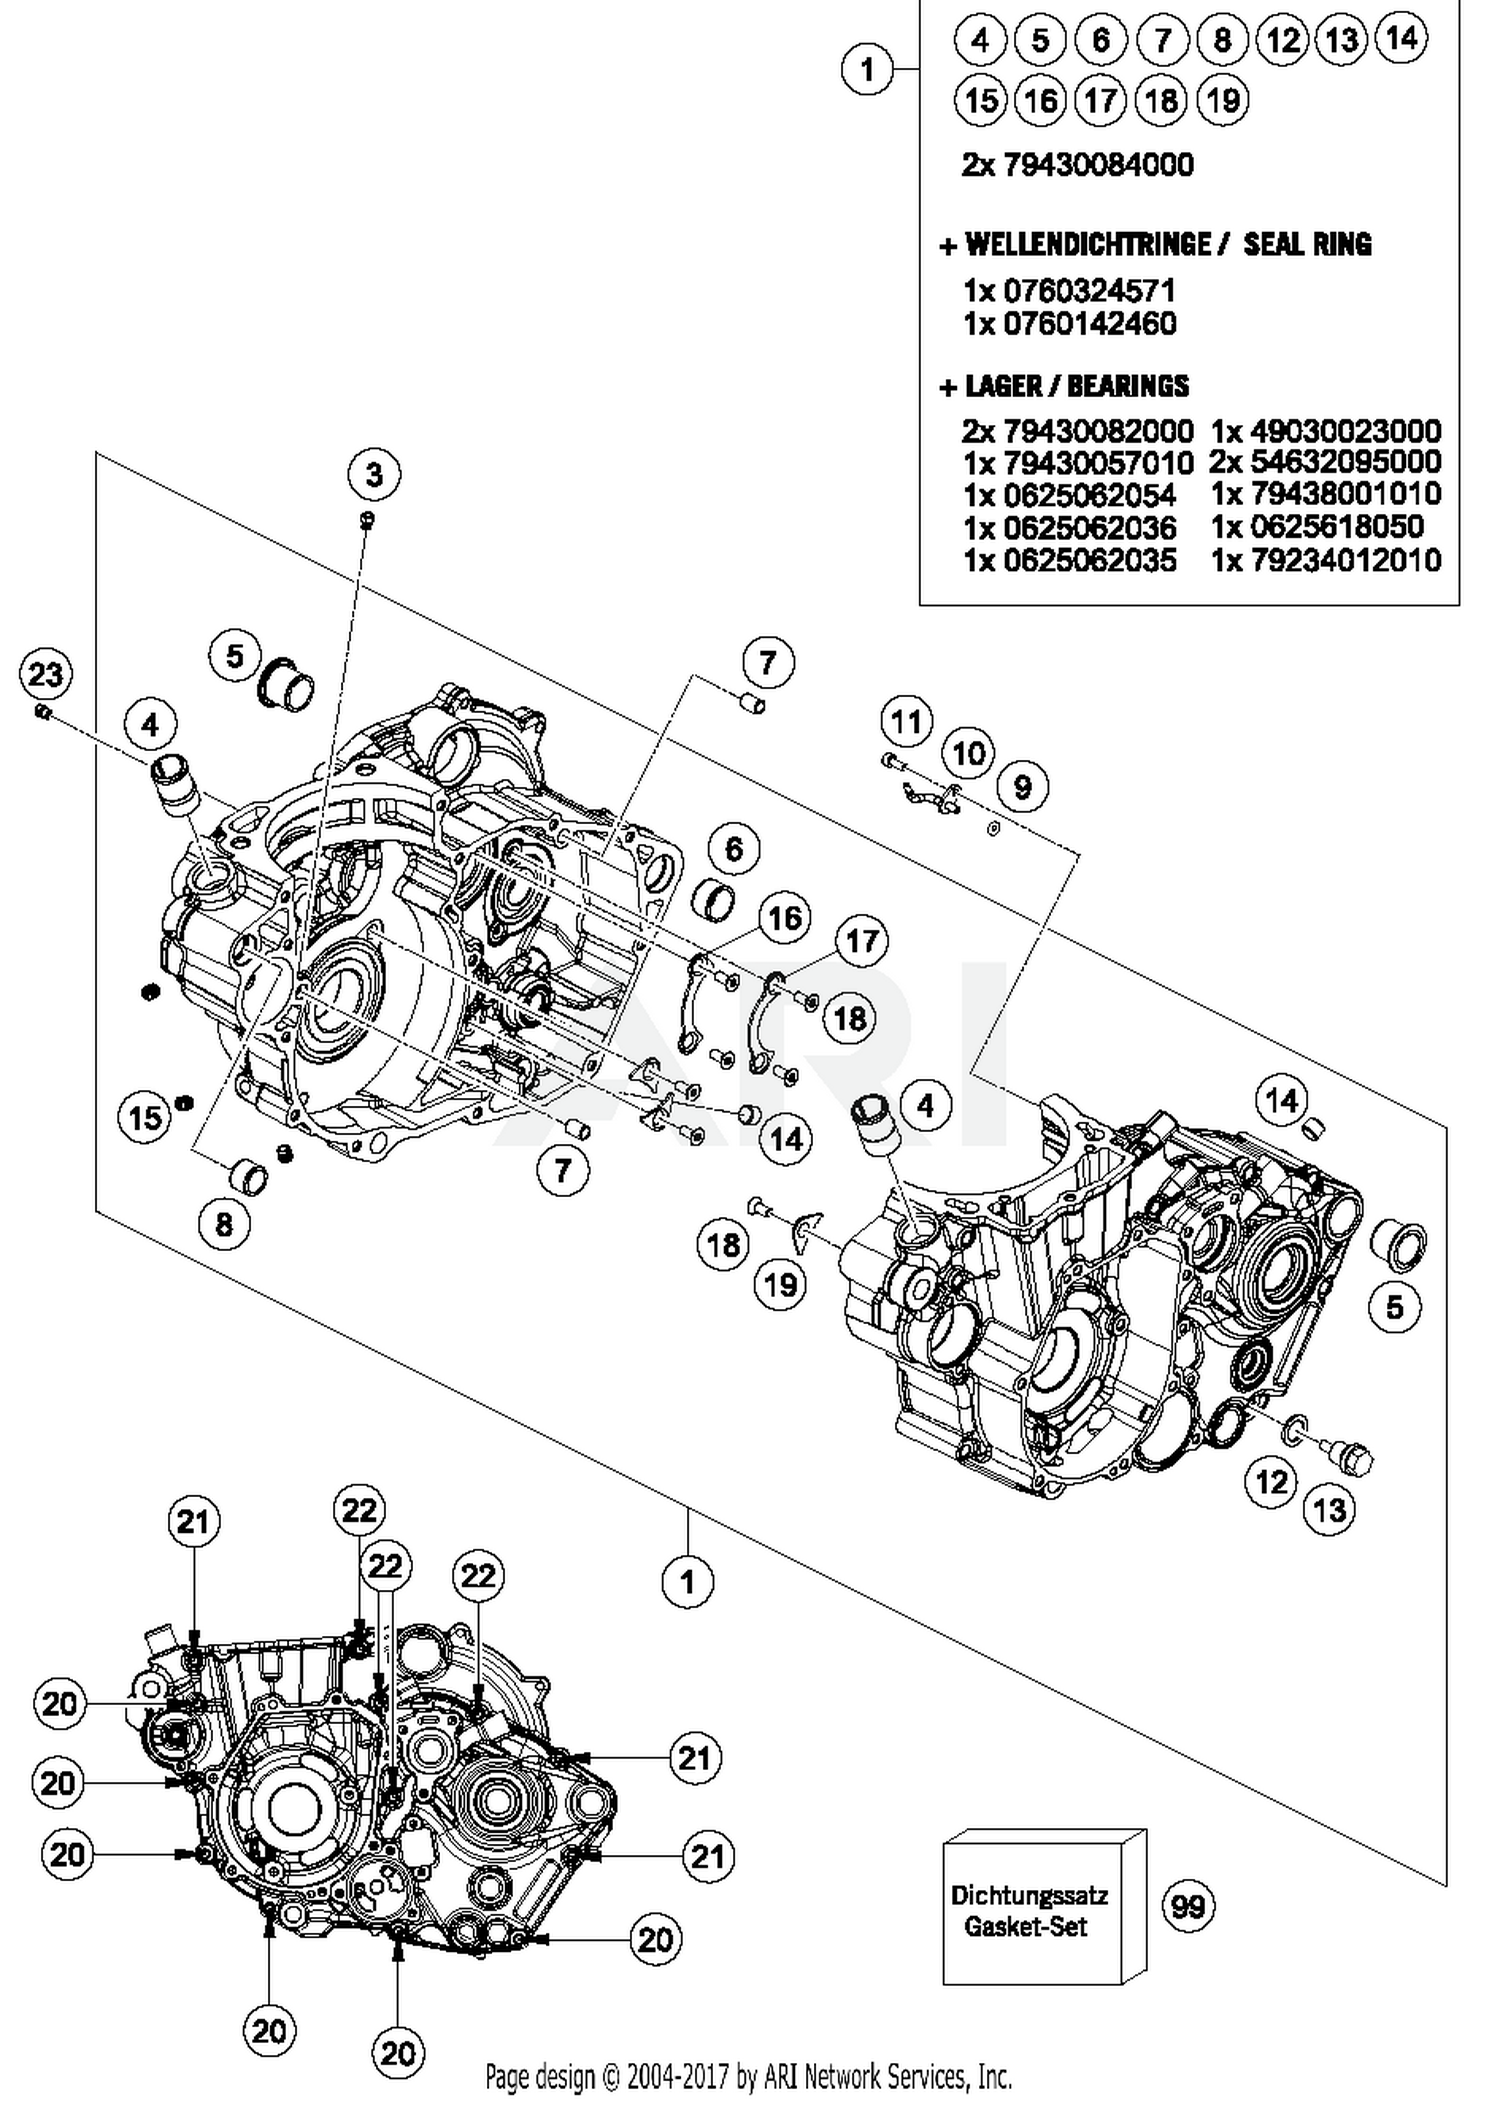 Ktm 0906100100 Best Price On Plug Din0906 M10x1 Parts At 2008 Exc Engine Diagram Part 14 Quantity Required 2